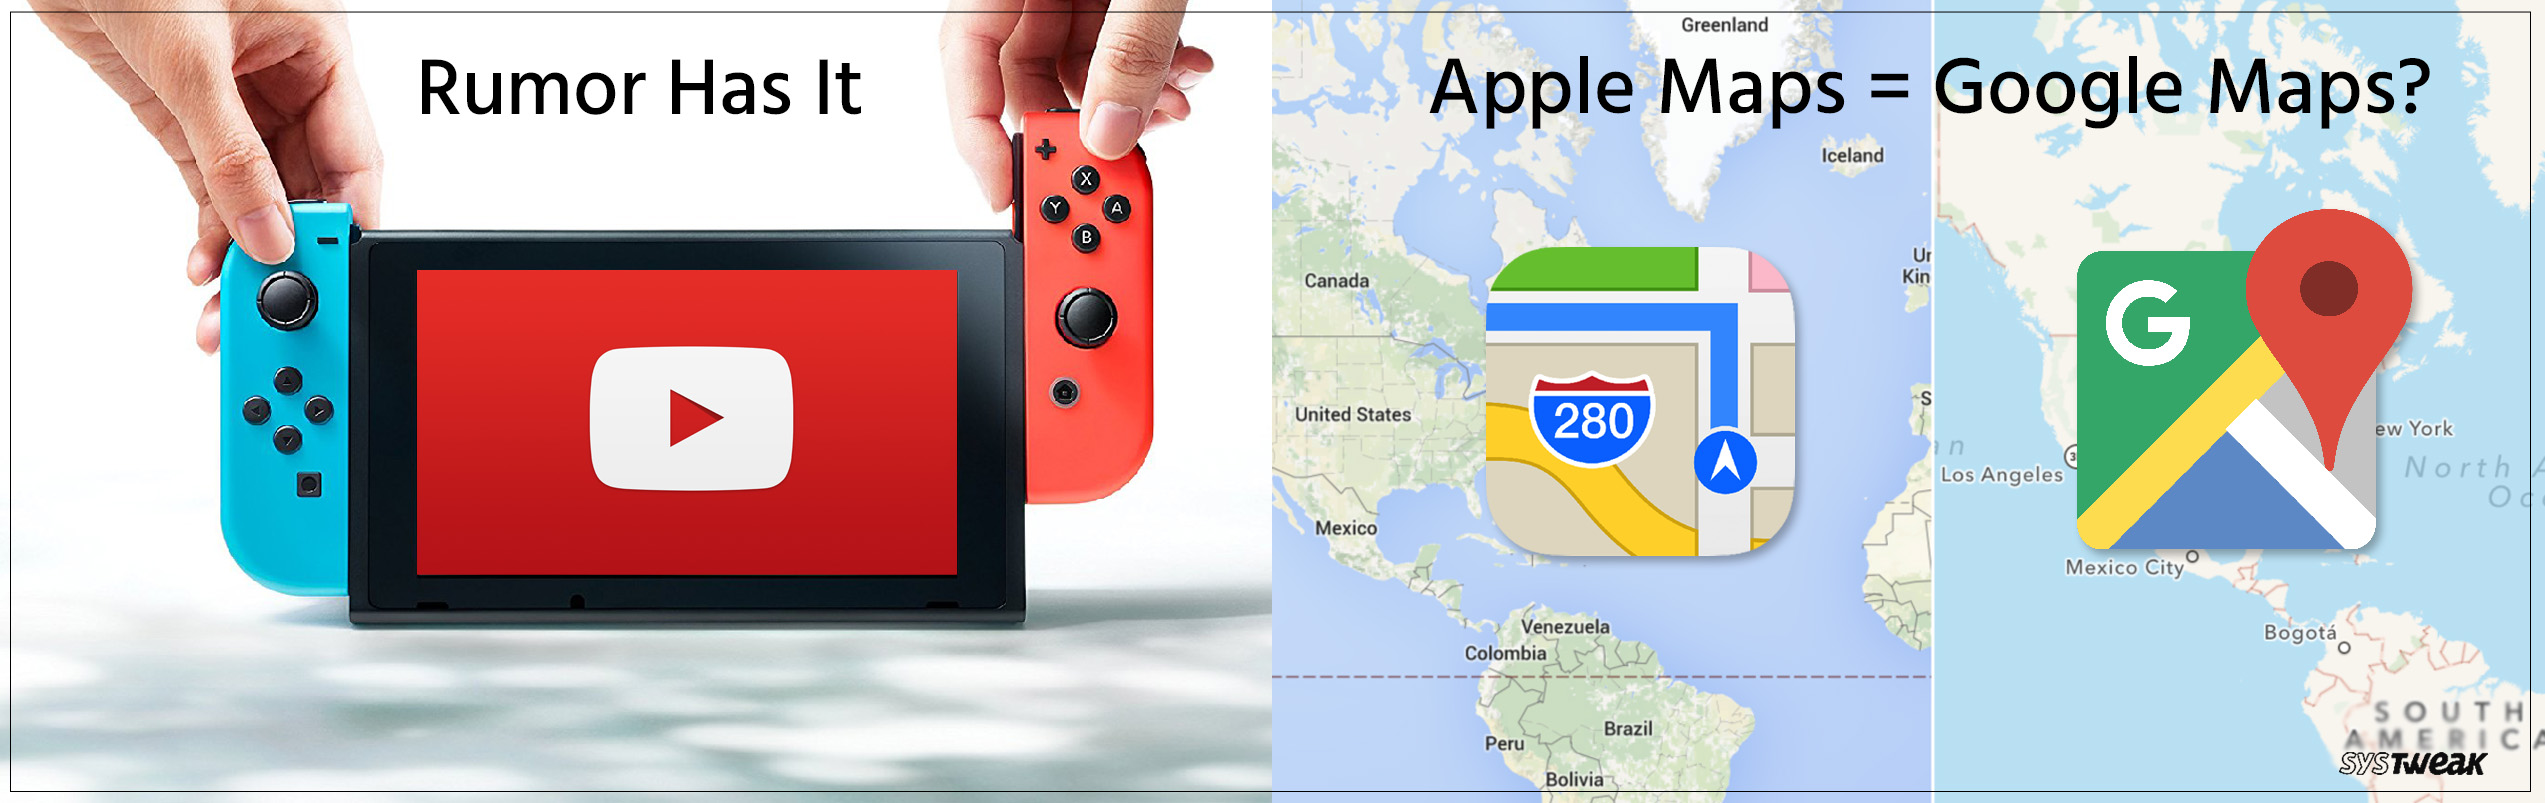 NEWSLETTER: NINTENDO SWITCH YOUTUBE APP & APPLE MAPS GETS AN UPGRADE